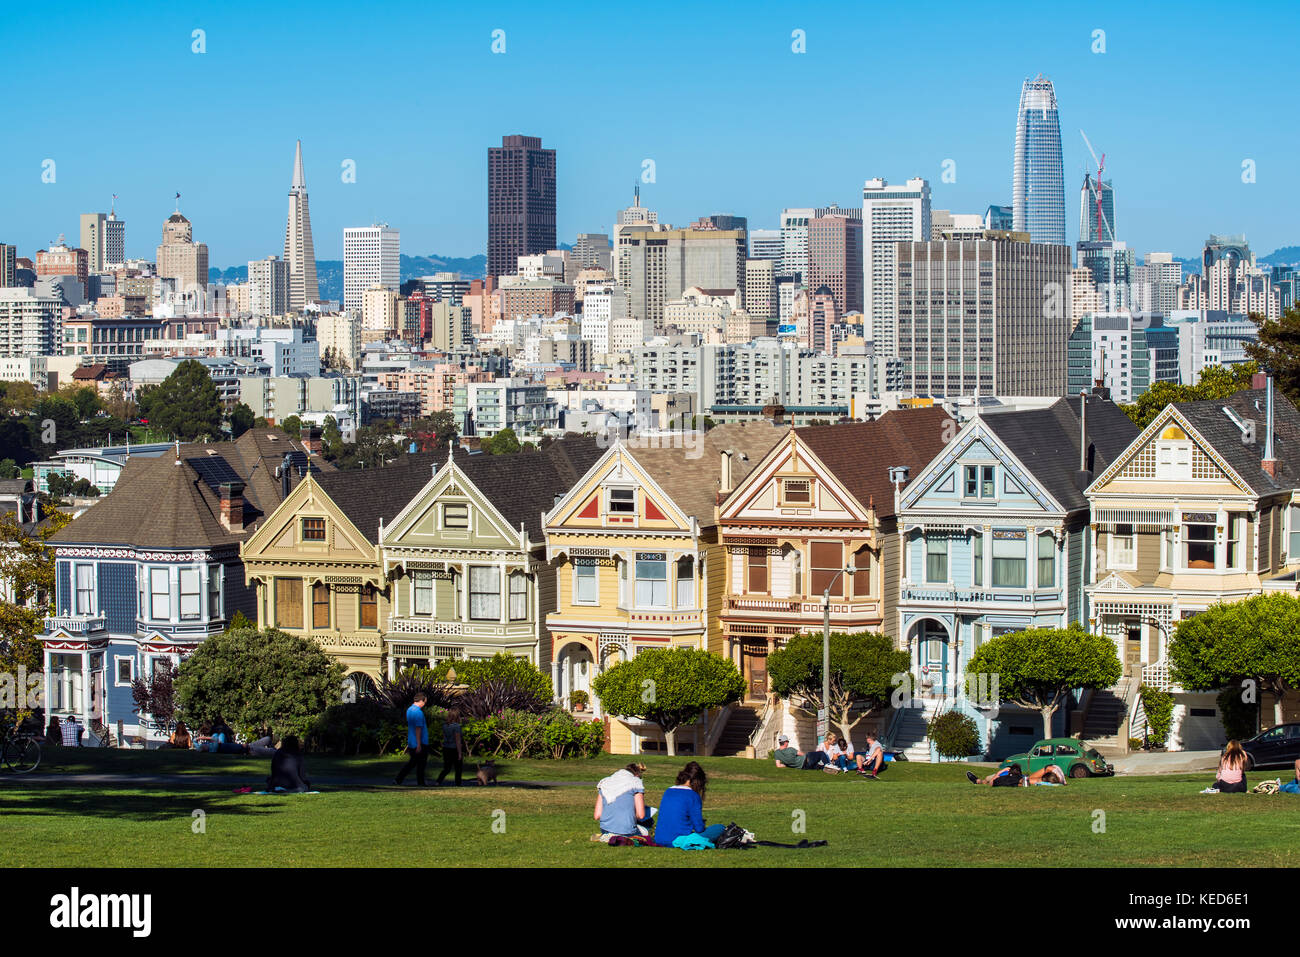 Alamo Square with the famous Painted Ladies Victorian and Edwardian houses, San Francisco, California, USA - Stock Image